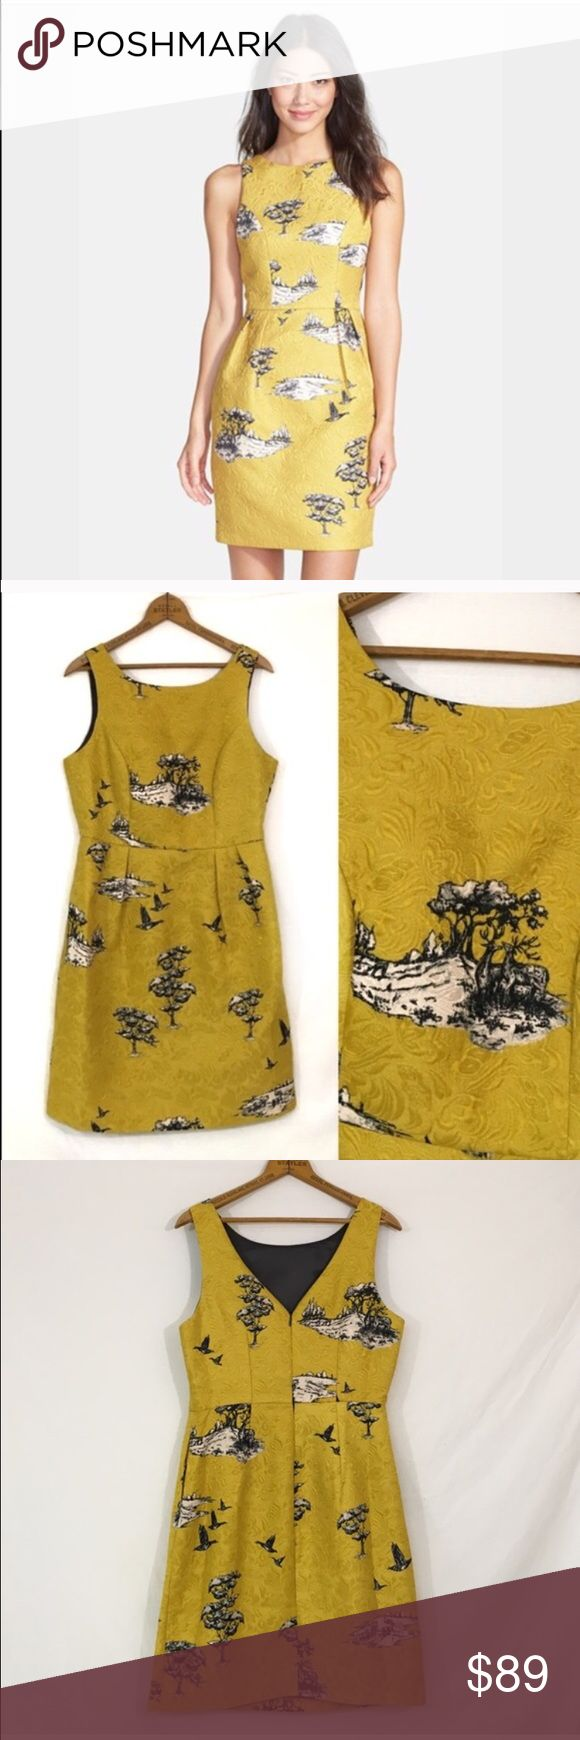 """🆕 DARLING UK $150 deer landscape print dress New, unworn condition; tags attached. Modcloth like styling. style name: Ophelia dress in chartreuse.    Bust 38"""" waist 32"""" hip 44"""" length 36.5"""".     Toile-inspired jacquard in vibrant chartreuse is tailored into a head-turning sheath dress that's sure to make you the star of the party. Pockets!  Hidden back-zip closure. Fully lined.  50% polyester, 50% cotton. Dry clean or hand wash cold, dry flat. By Darling; imported. Dresses. Darling  Dresses…"""